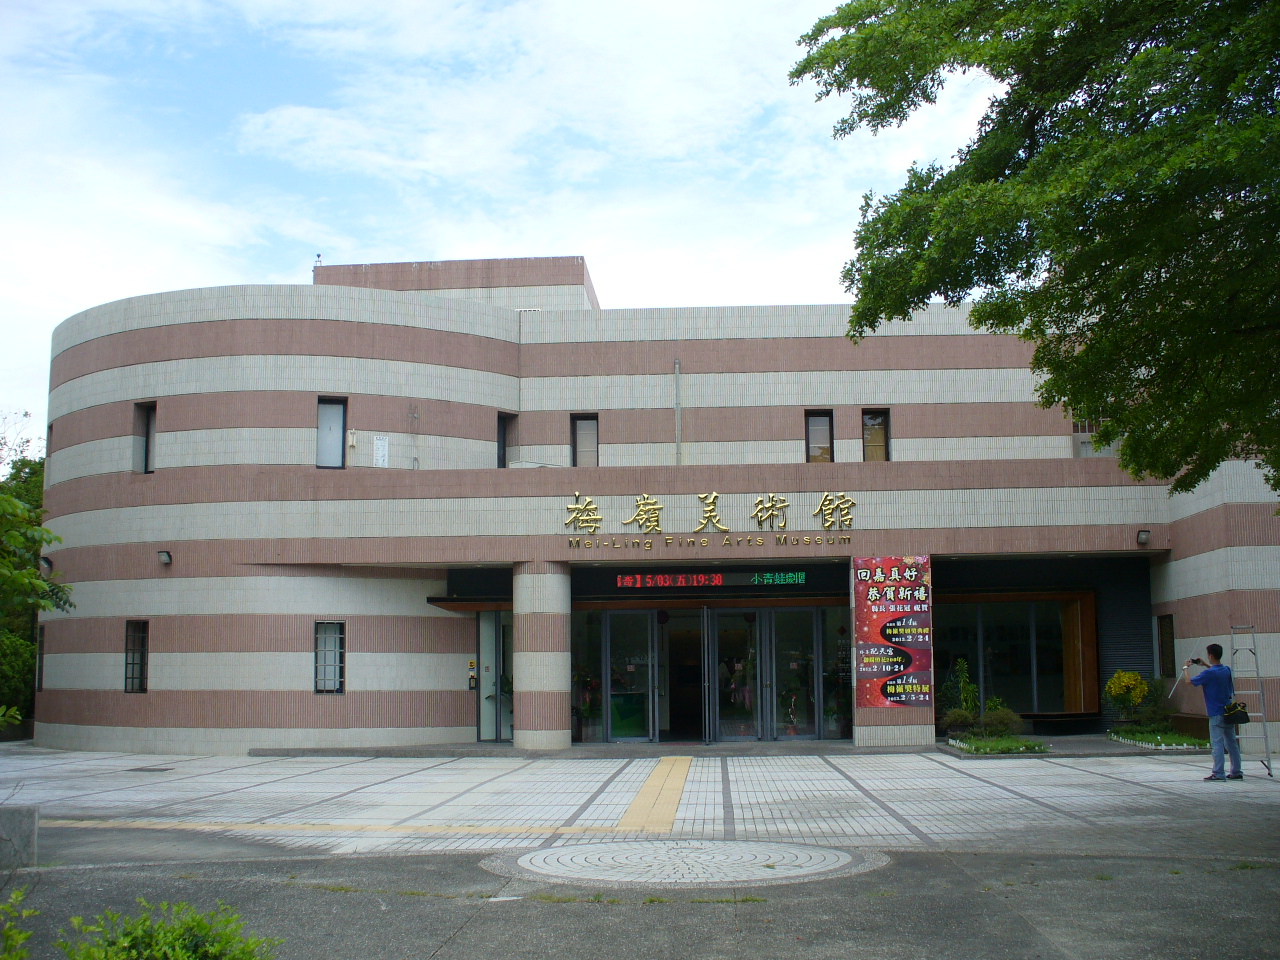 Meiling Fine Arts Museum